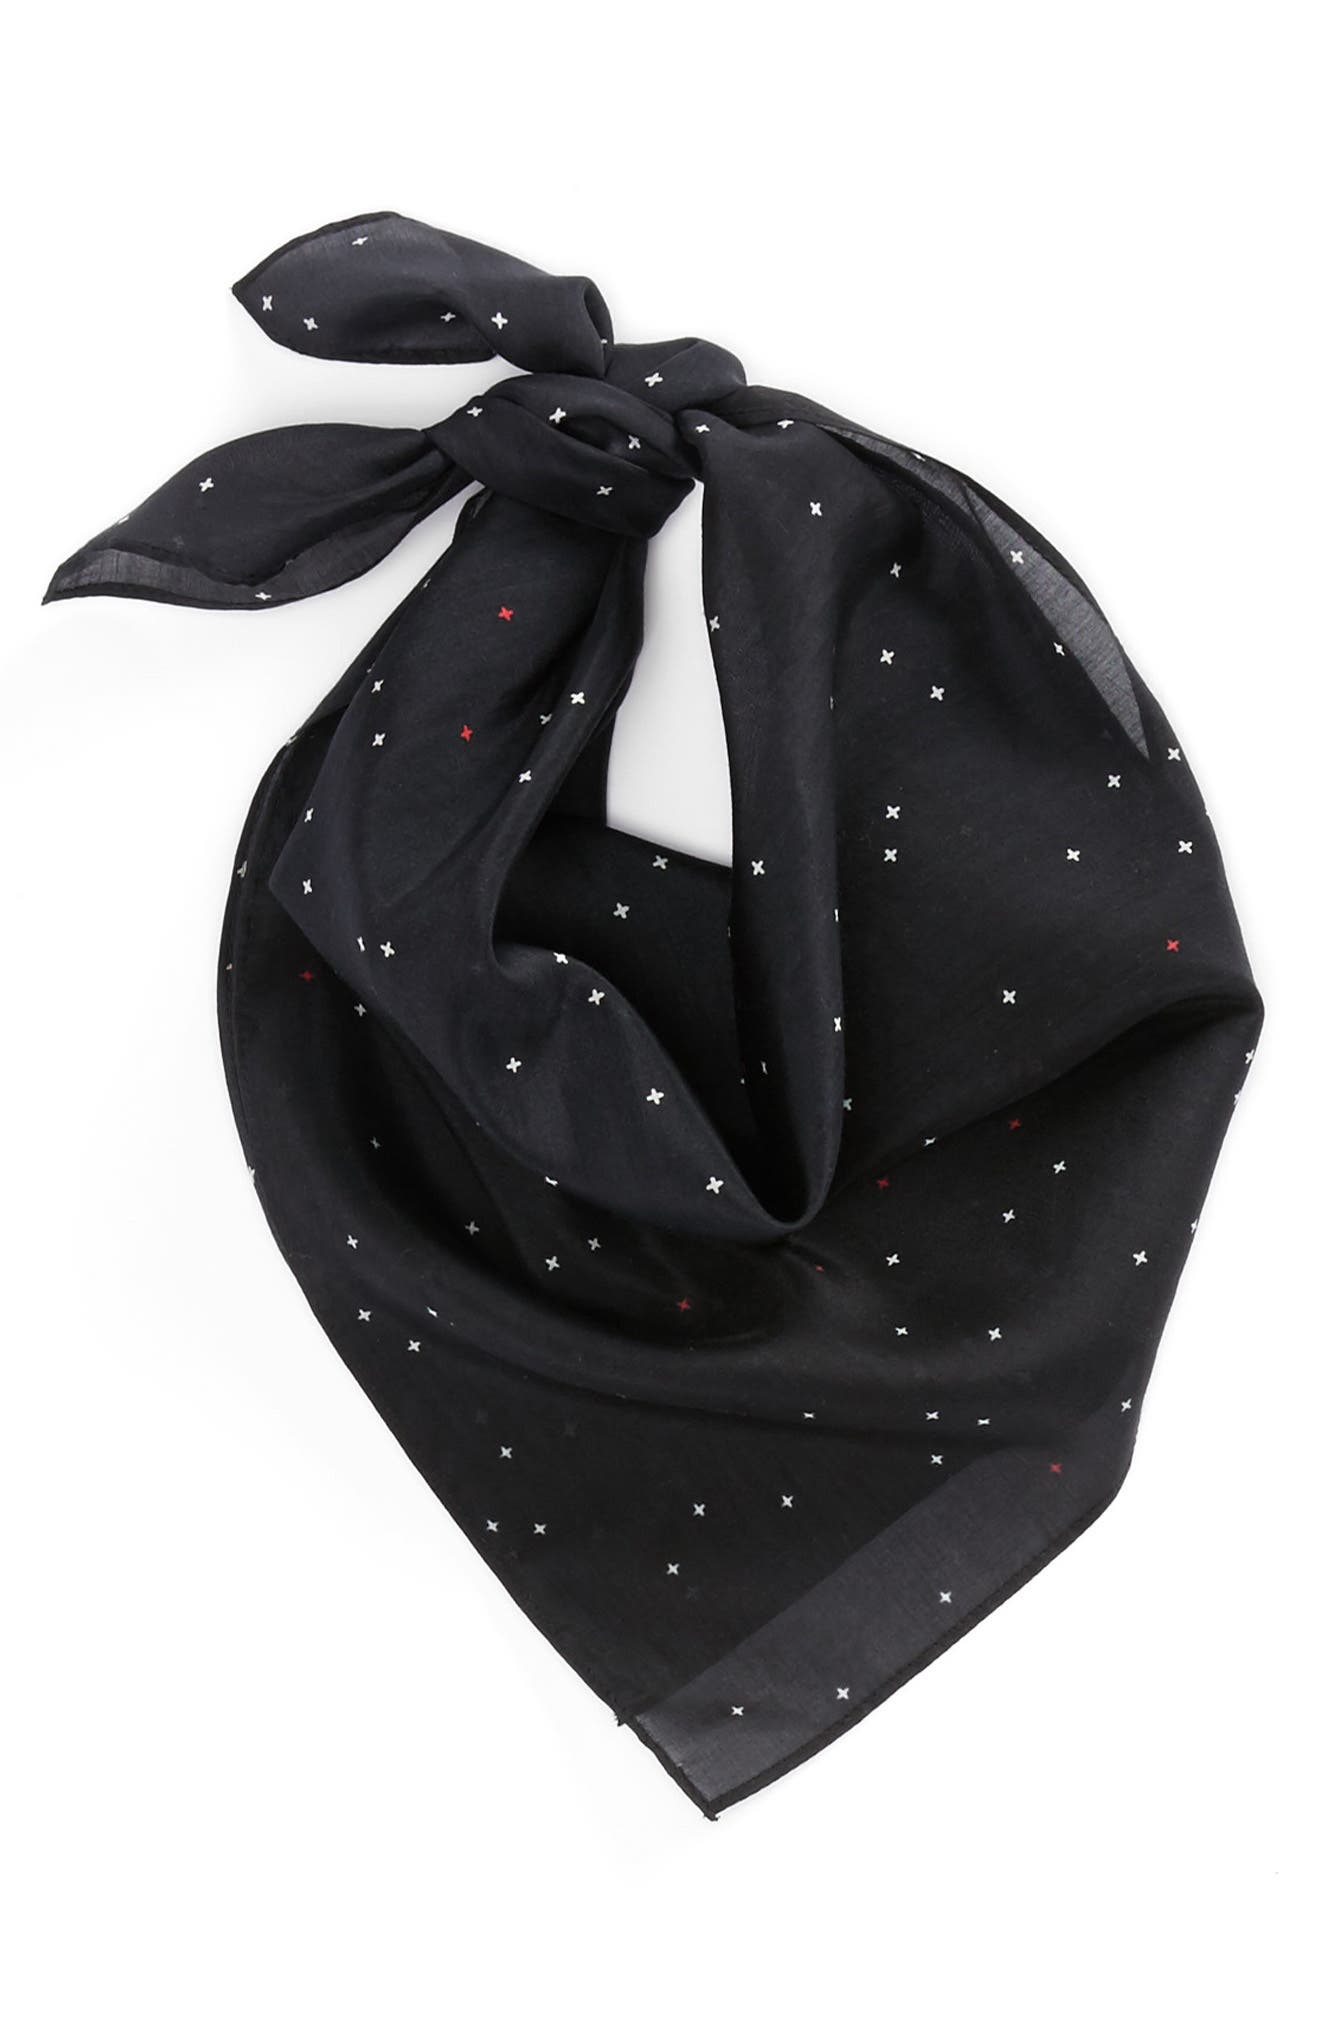 RAG & BONE,                             Cross Bandana,                             Alternate thumbnail 3, color,                             001